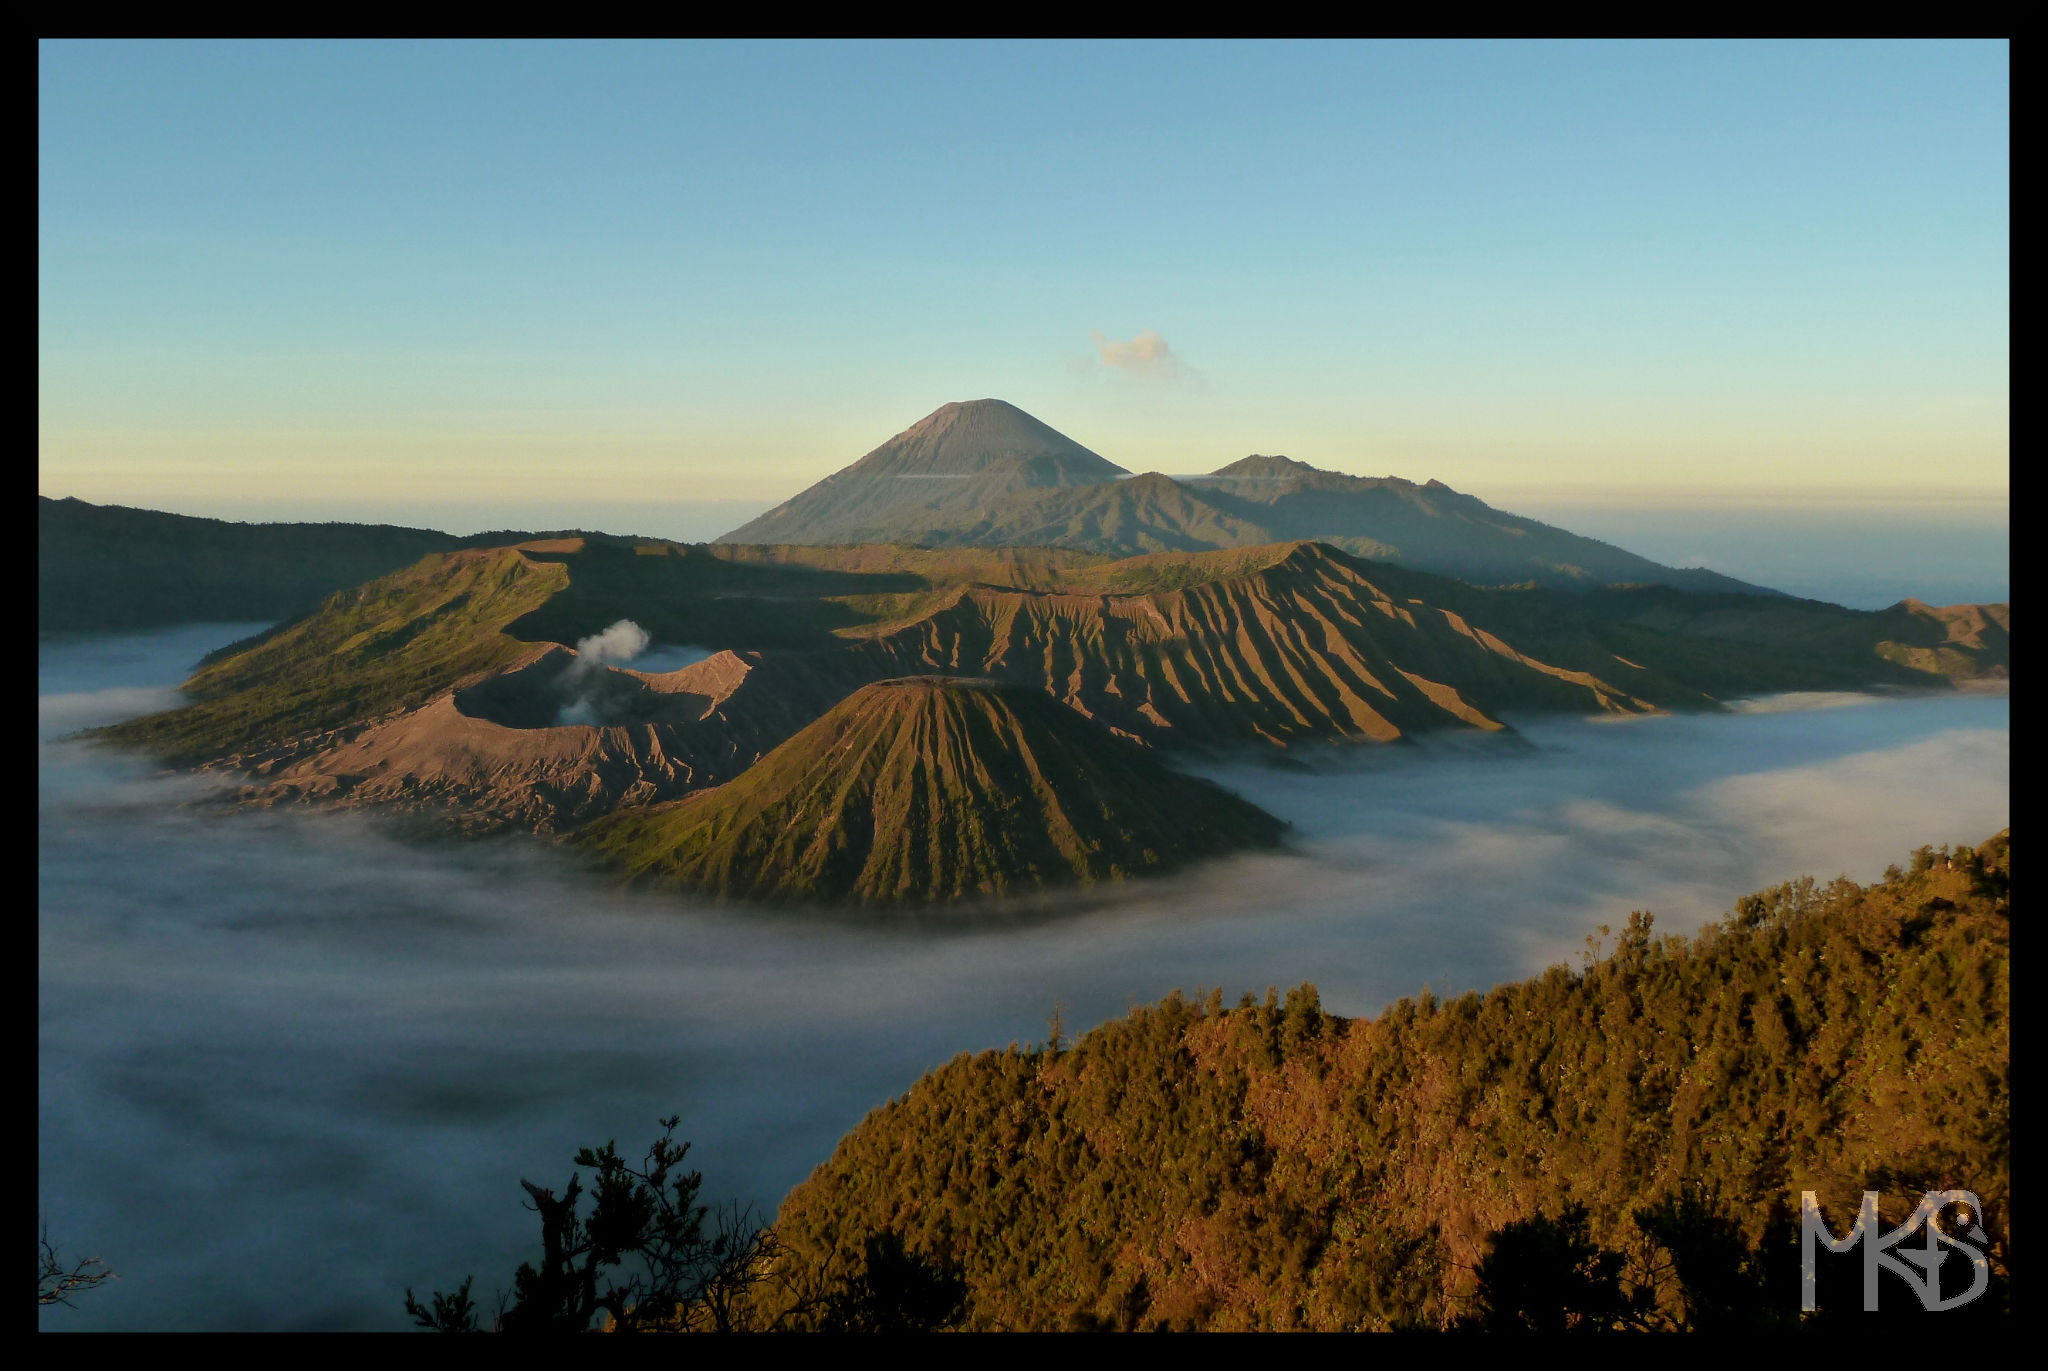 Panoramic view of Mt. Bromo (the steaming crater), Mt. Batok, Mt. Semeru (the highest).